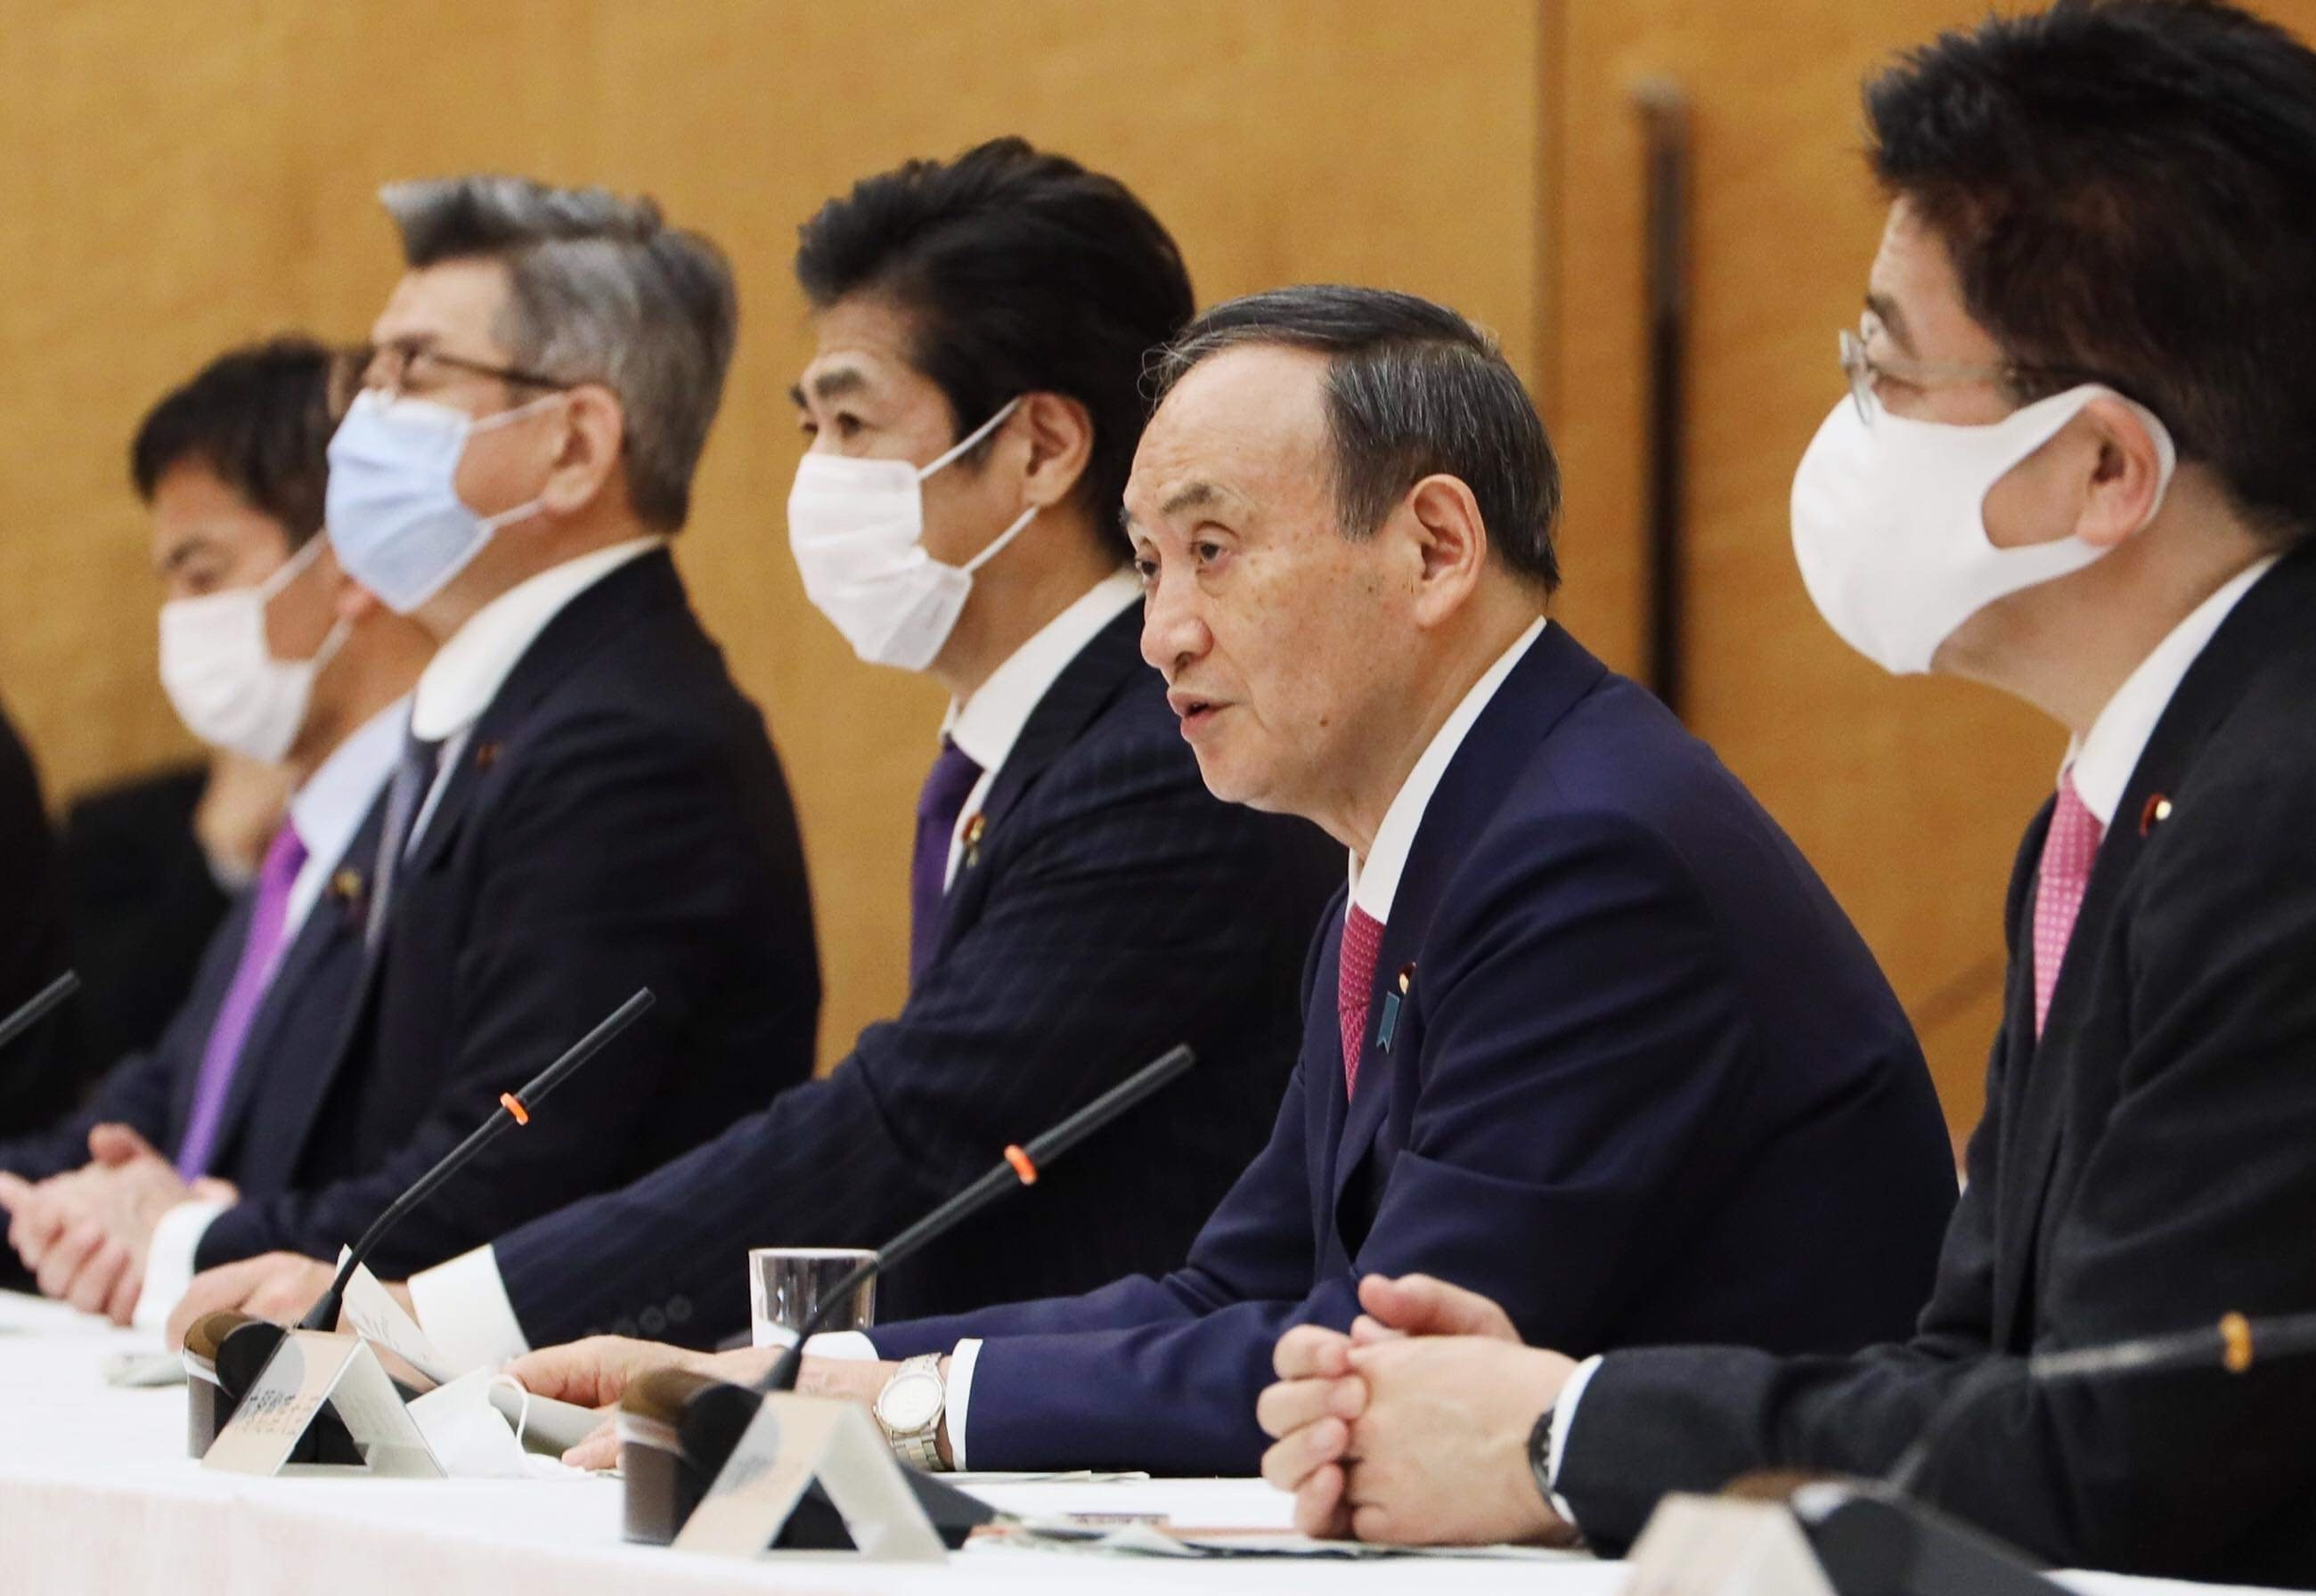 Japan's Prime Minister Yoshihide Suga. Photo Courtesy: PM's Office of Japan/Twitter